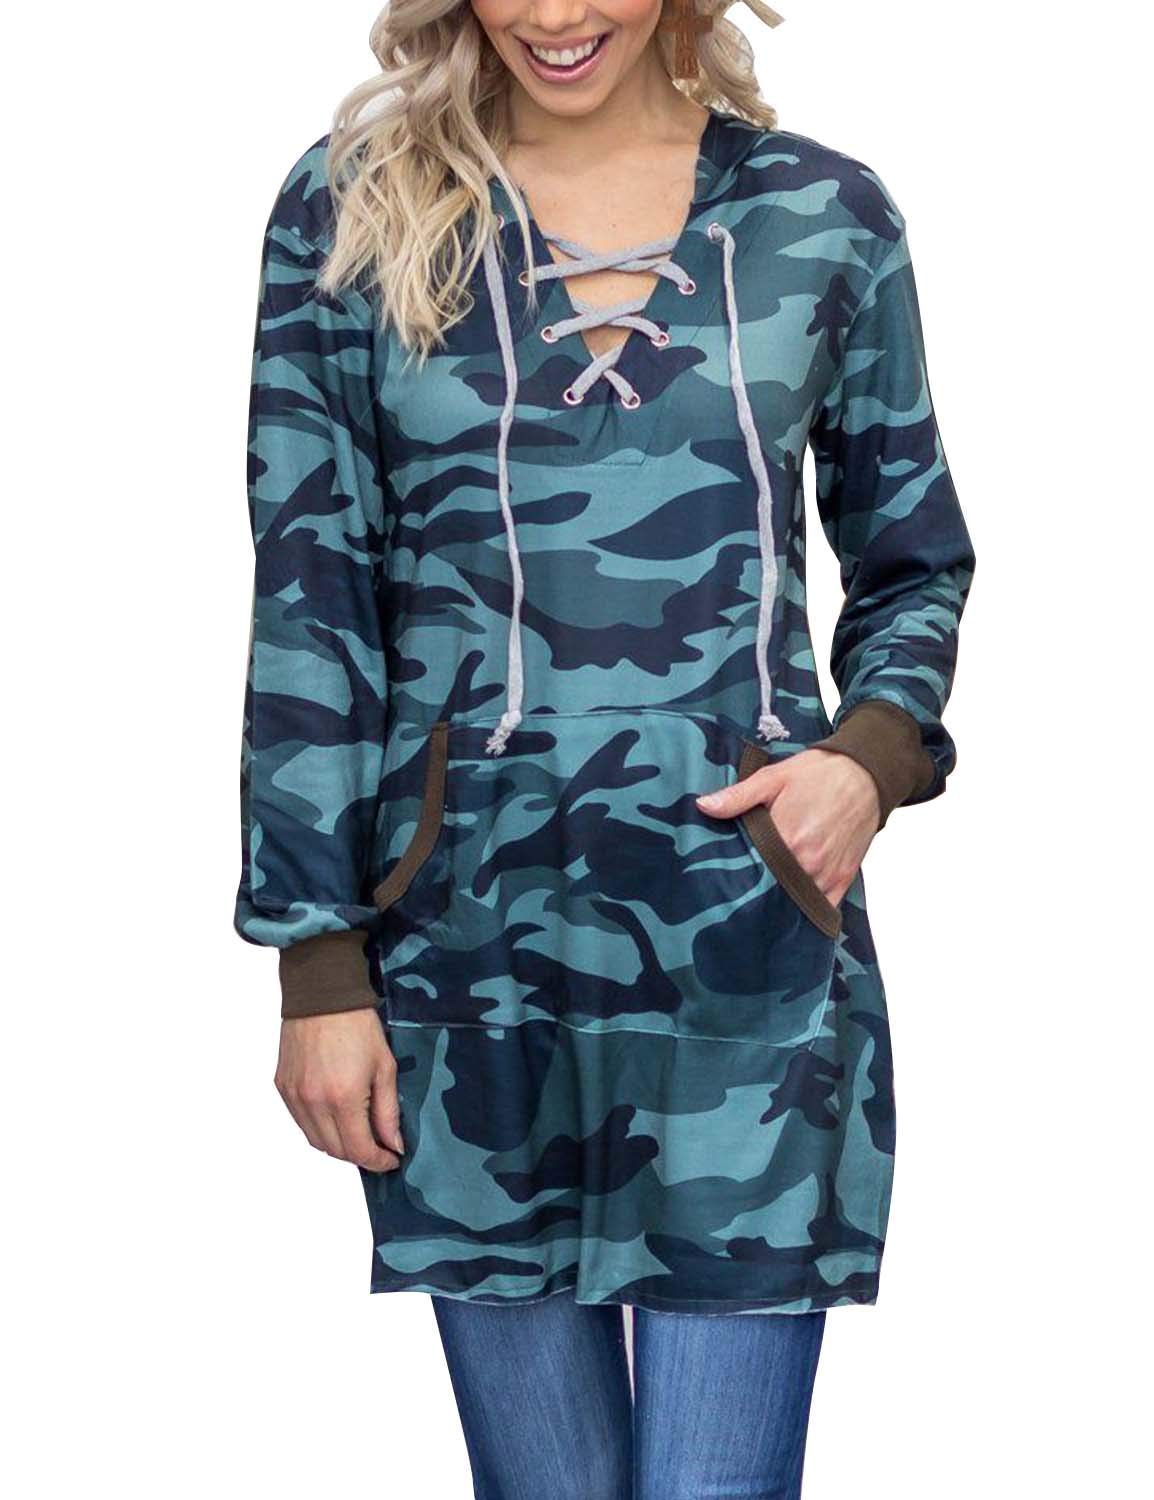 BMJL Women's V Neck Longline Contrast Color Hoodie Camouflage Print Tunic Top